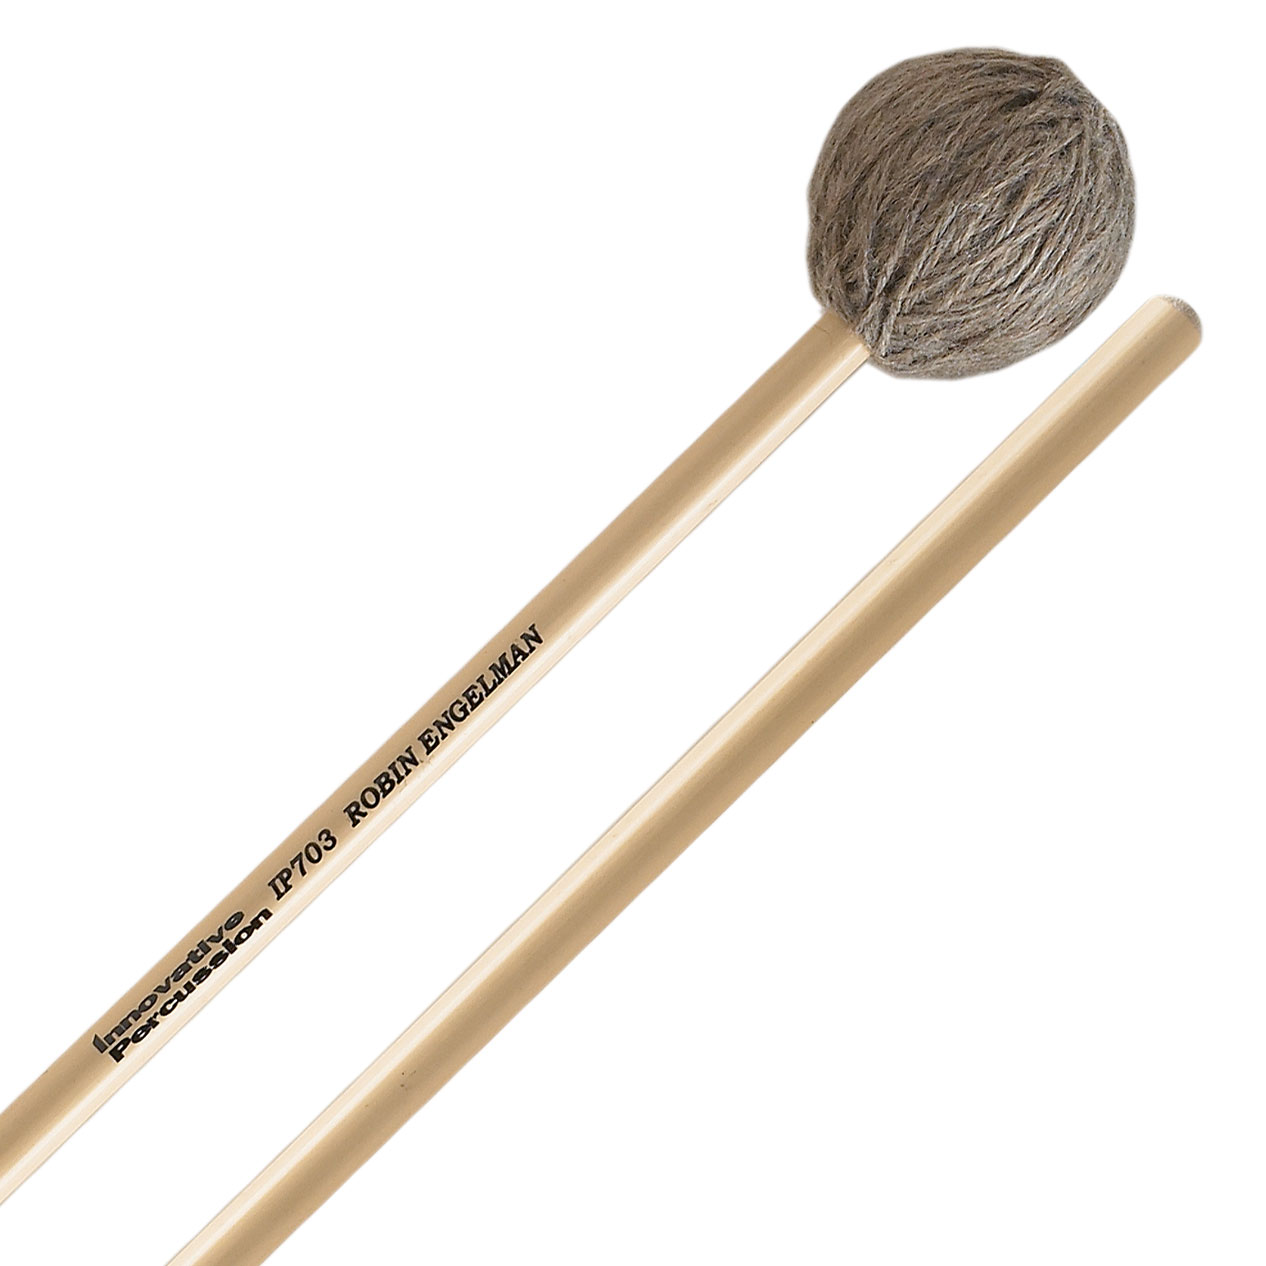 Innovative Percussion Robin Engelman Signature Medium Ensemble Marimba Mallets